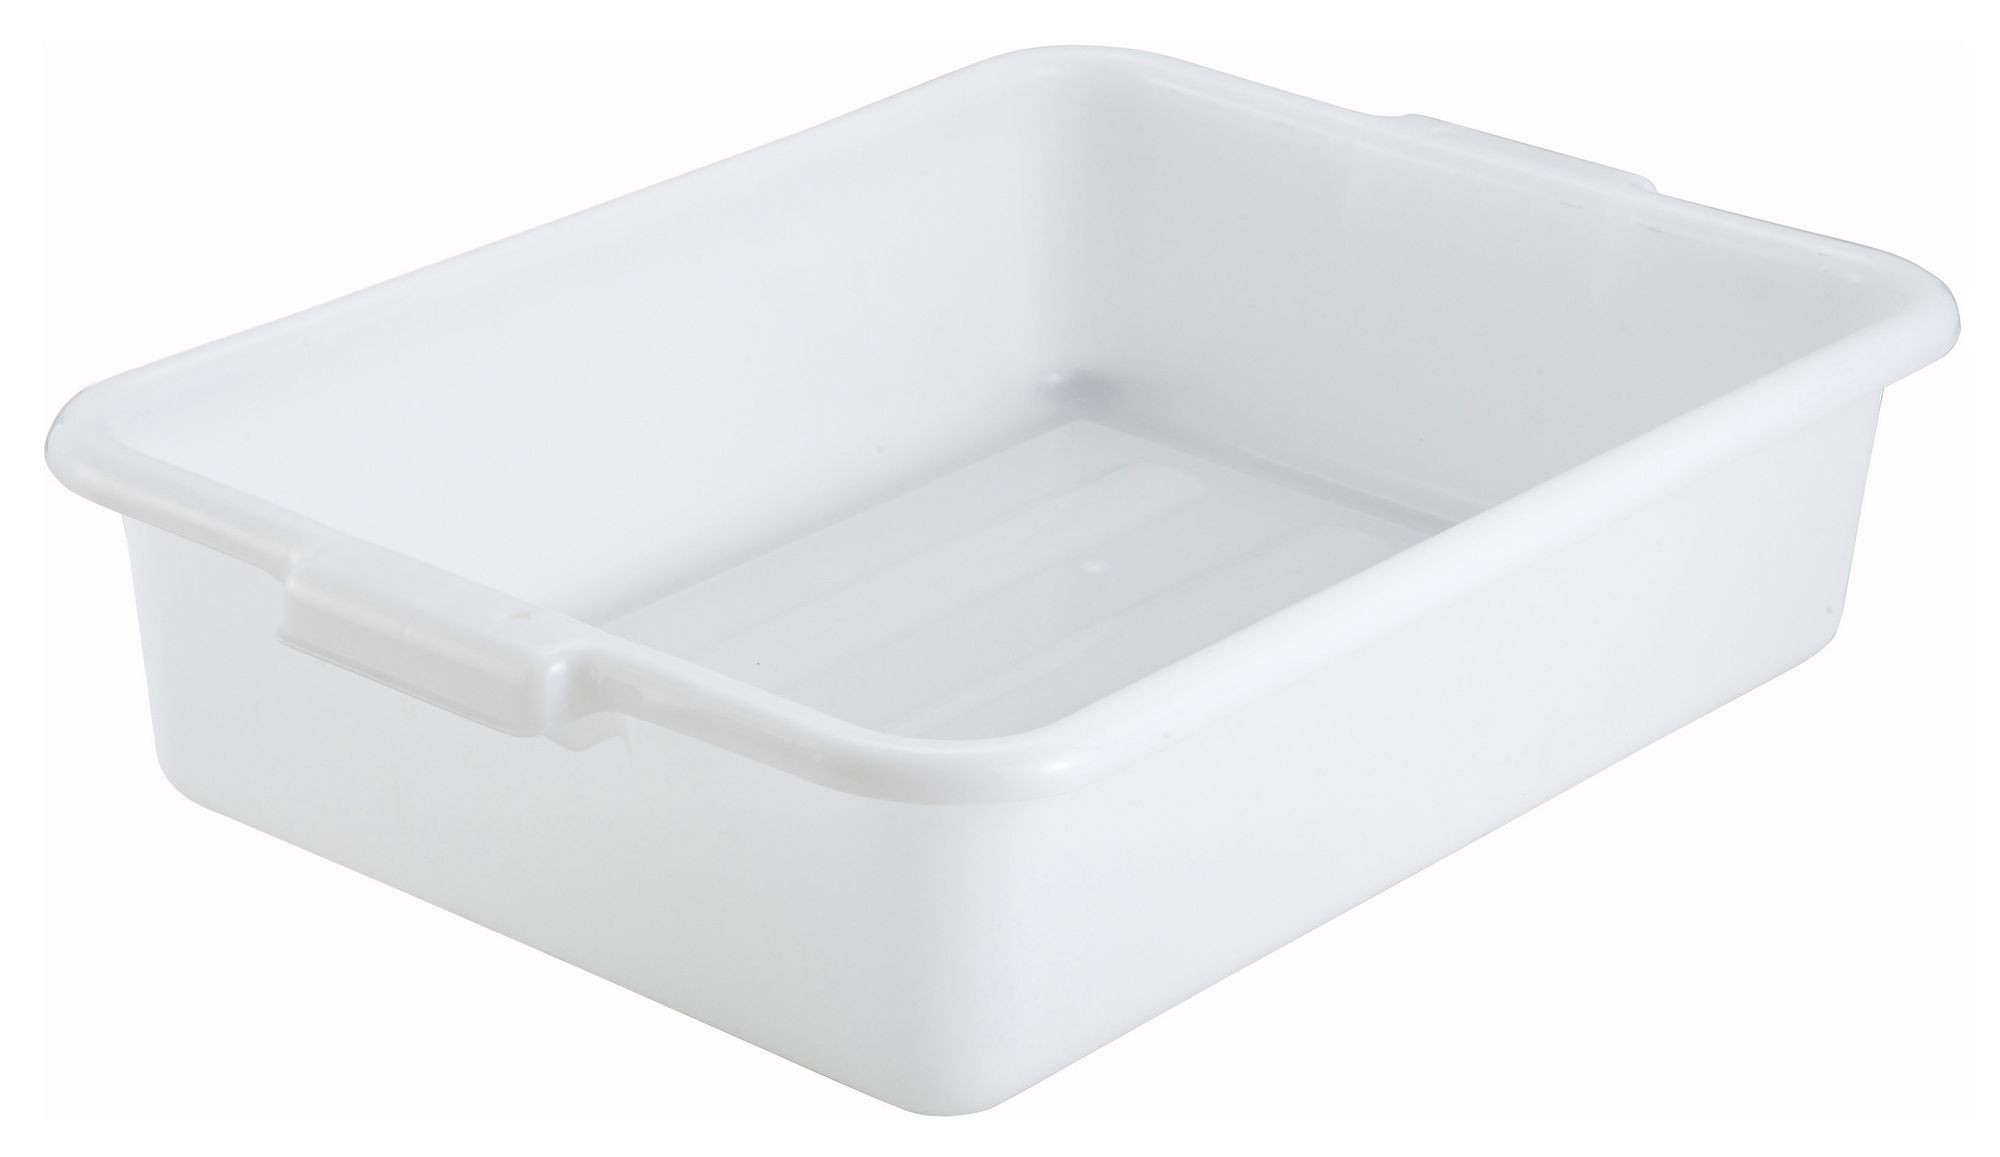 White Dish Box - 20-1/4 x 15-1/2 x 5